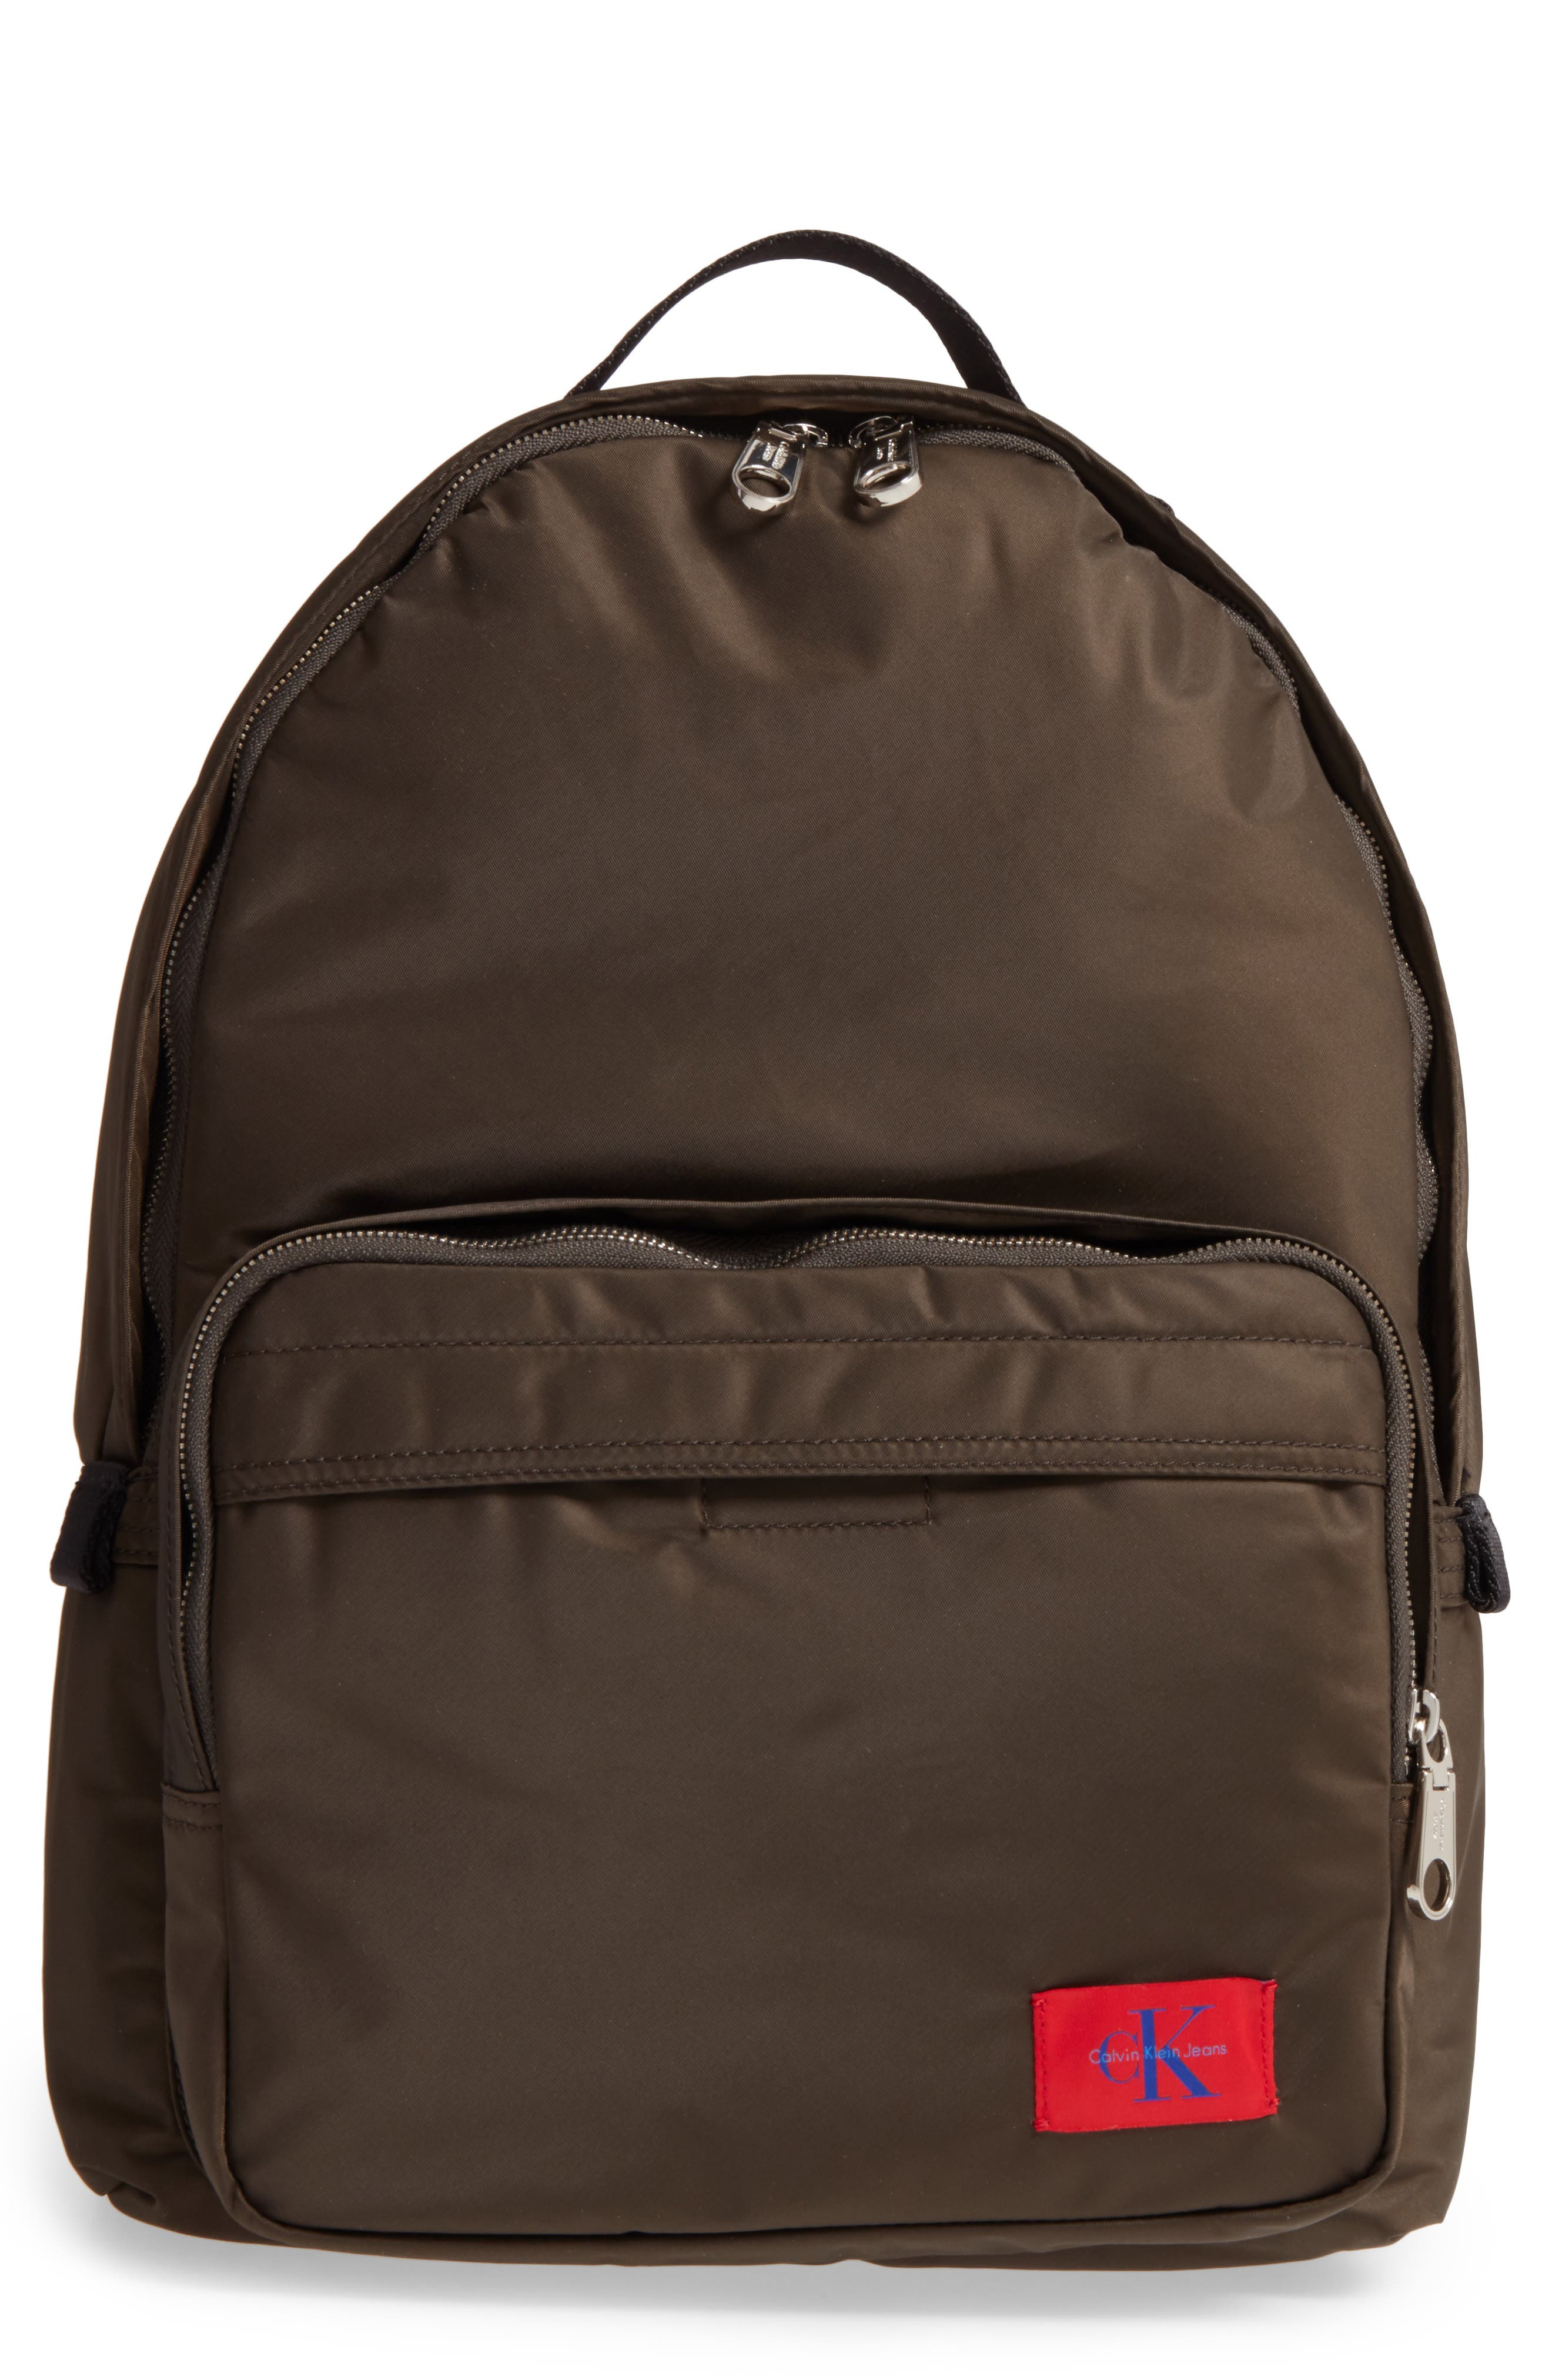 Campus Backpack,                             Main thumbnail 1, color,                             Cargo